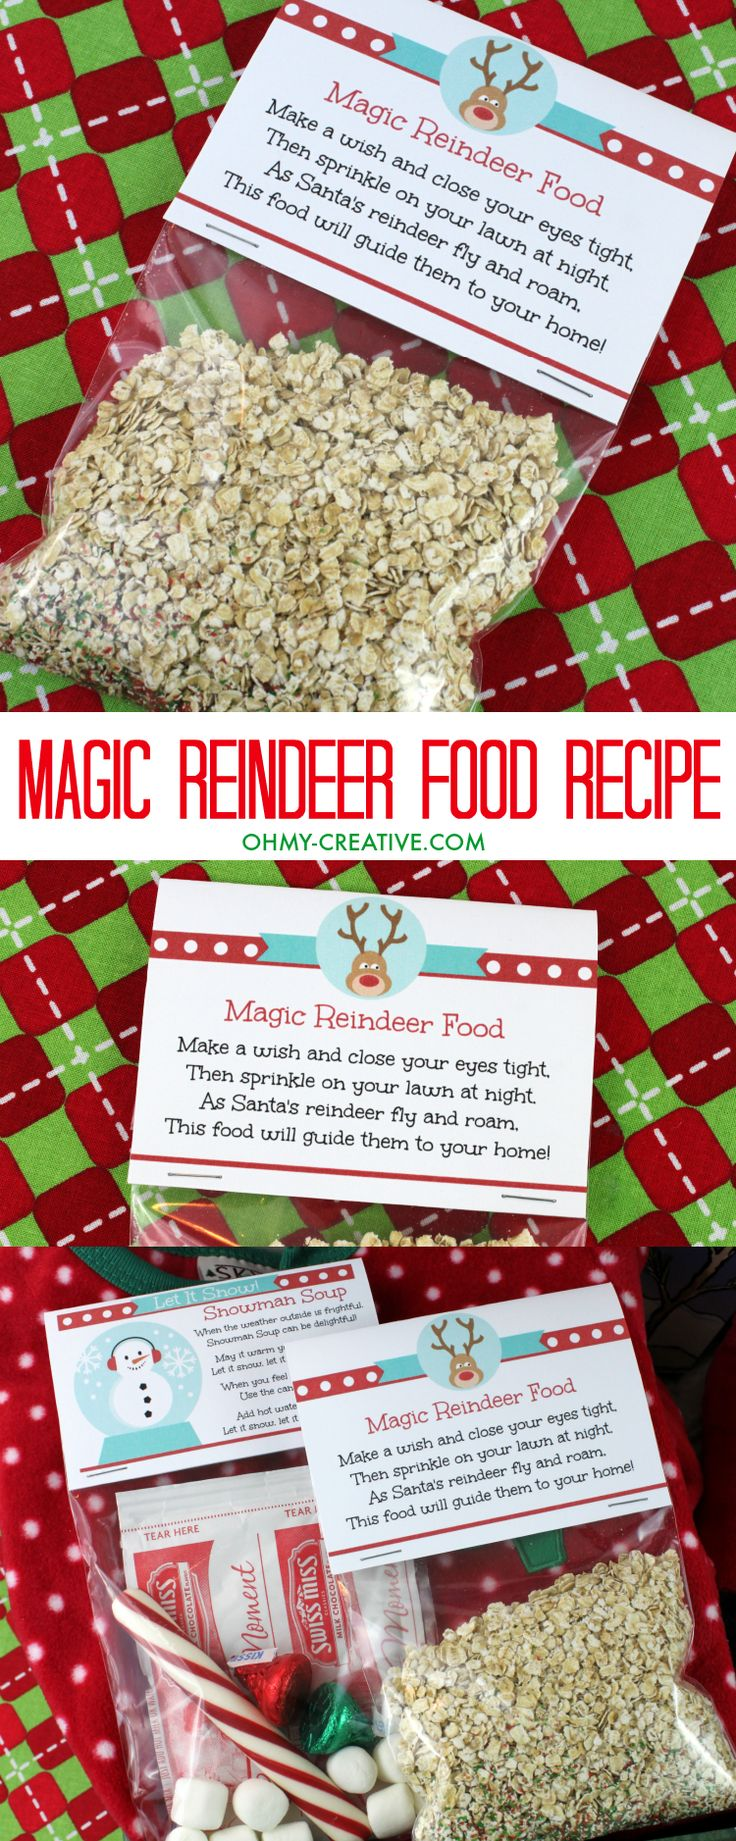 Help guide Santa's sleigh on Christmas Eve with this fun Magic Reindeer Food Recipe! Cool printable too! | OHMY-CREATIVE.COM - more at megacutie.co.uk